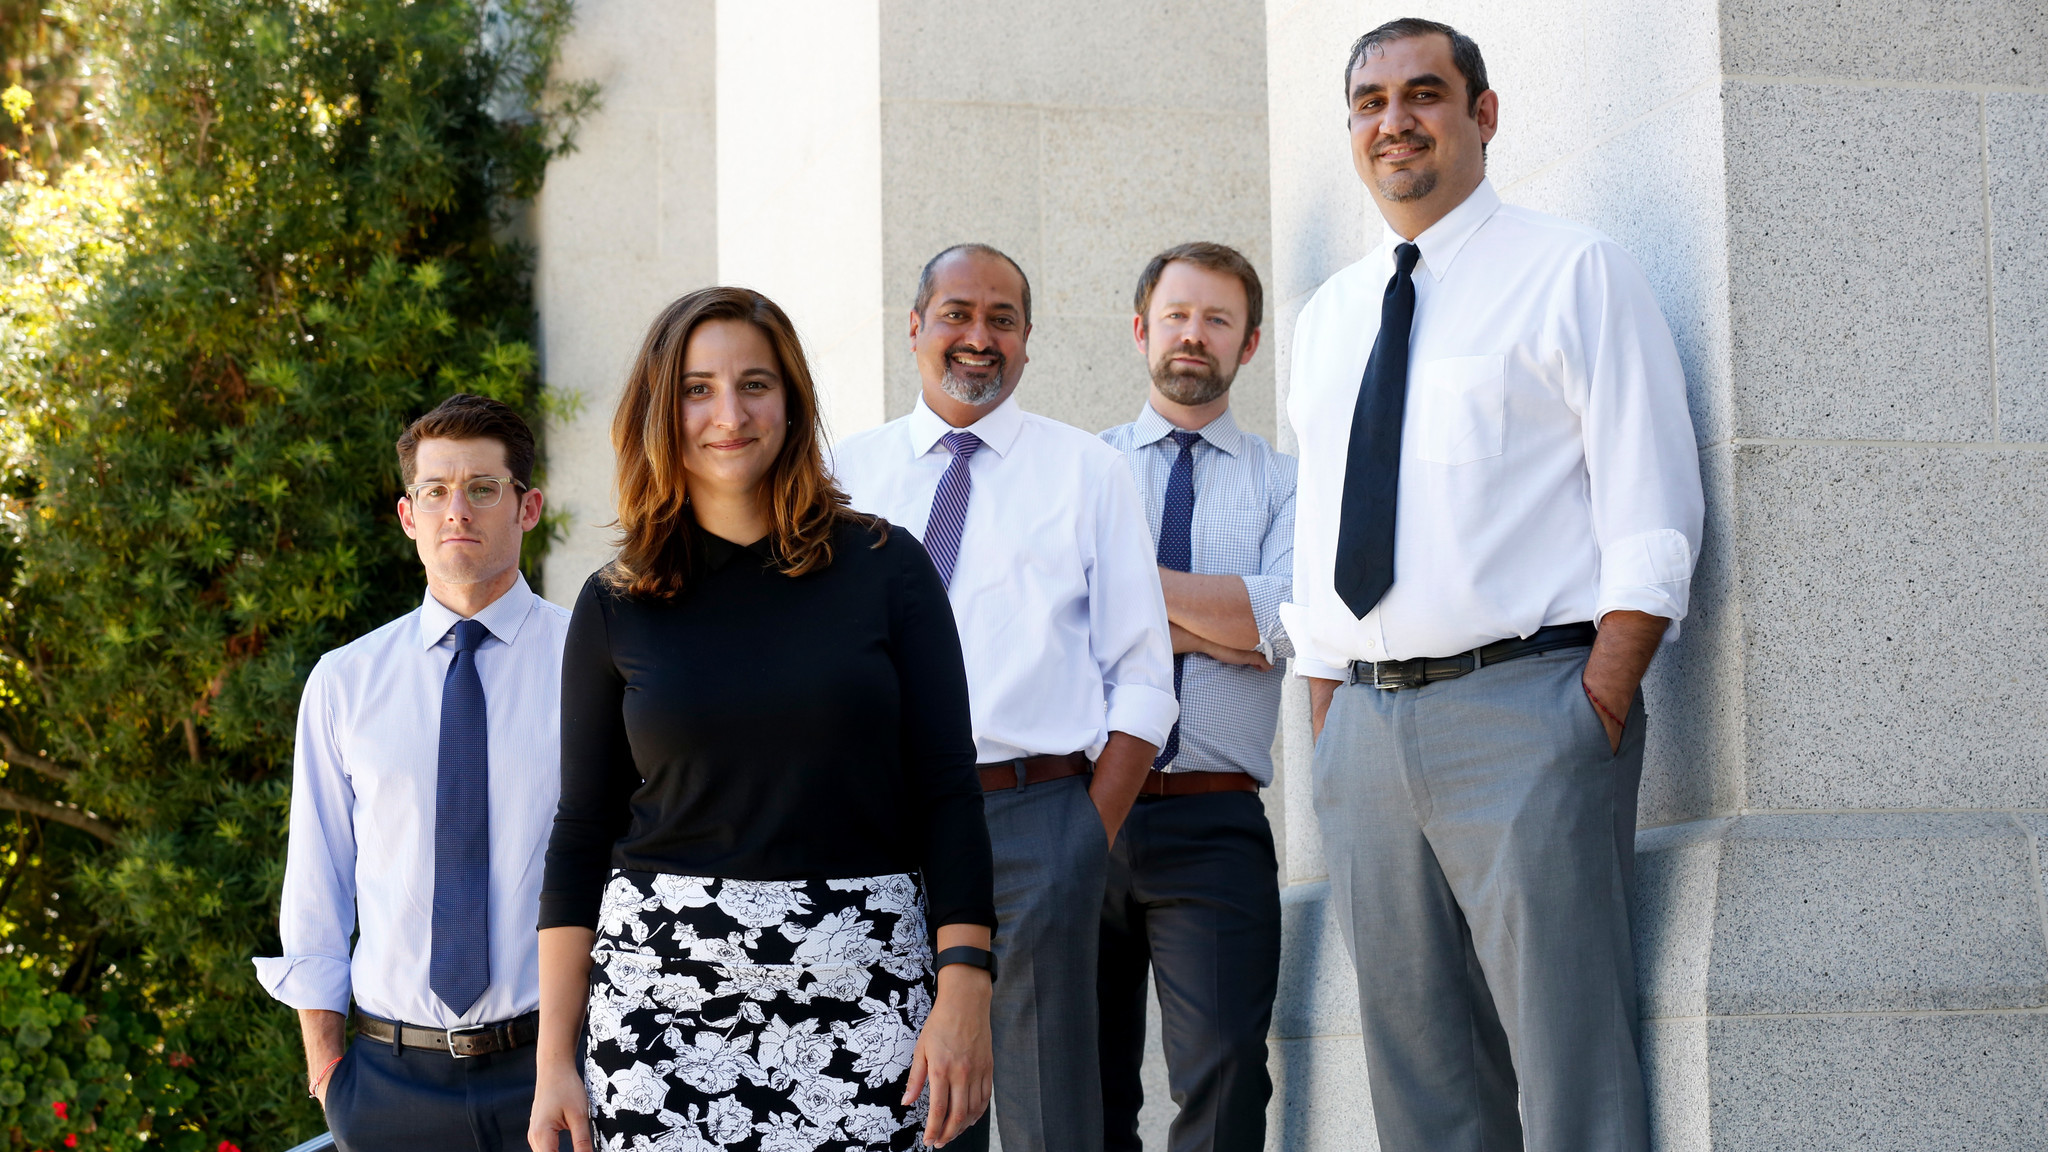 State Senate counsel Jake Levine, left, Jena Price of the California League of Conservation Voters, Parin Shah of the Asian Pacific Environmental Network, Alex Jackson of the Natural Resources Defense Council and Assembly aide Carlos Gonzalez worked on the climate measure.